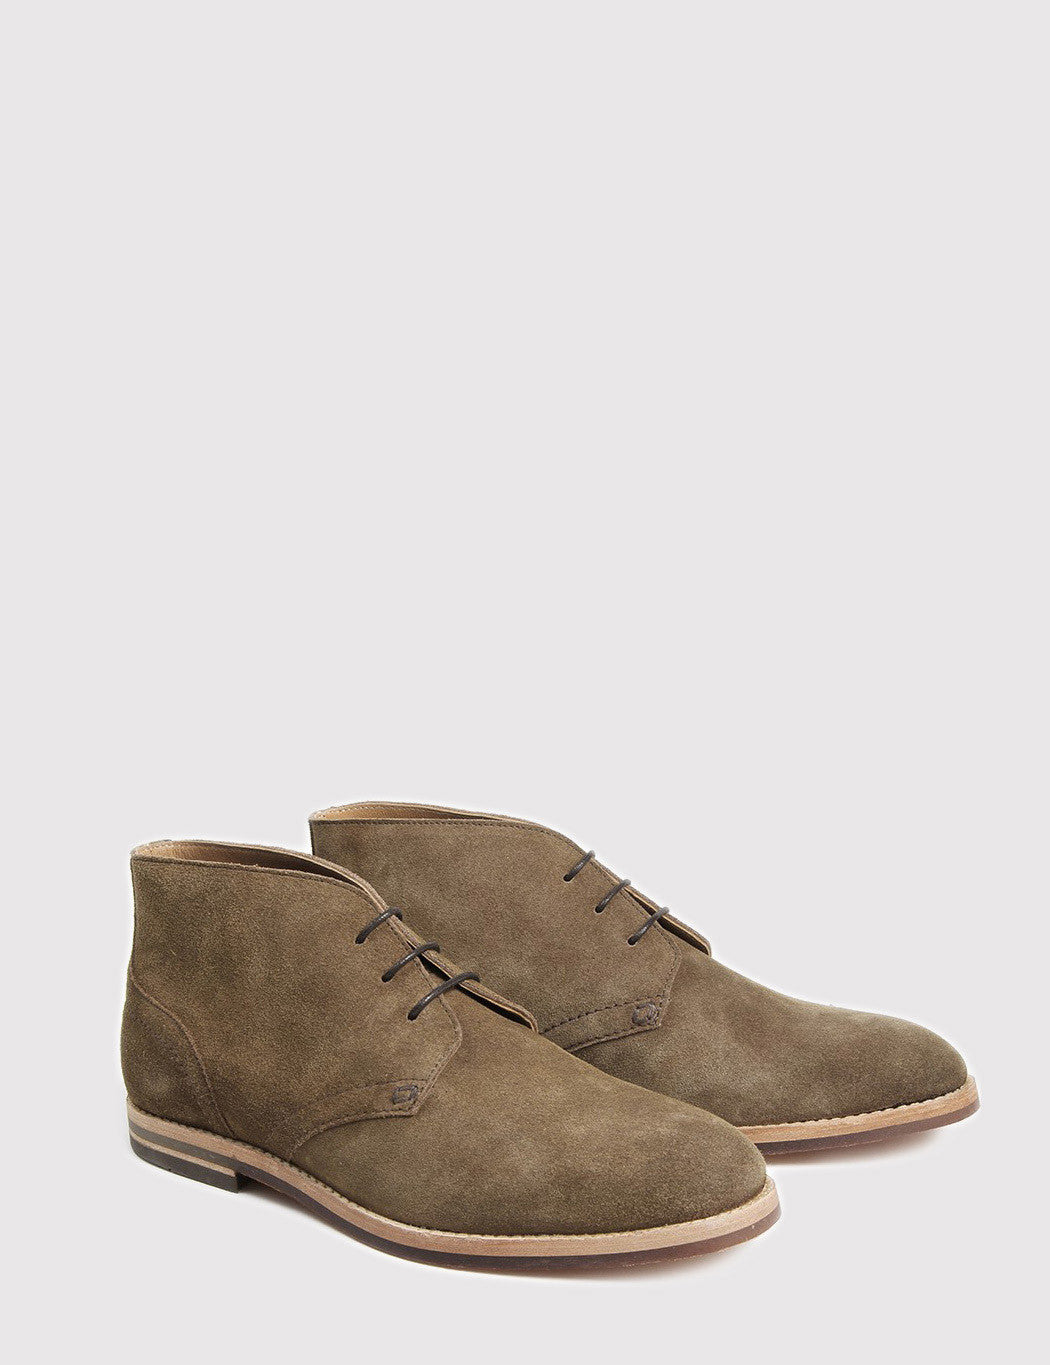 Hudson Houghton 3 Suede Boots - Tobacco